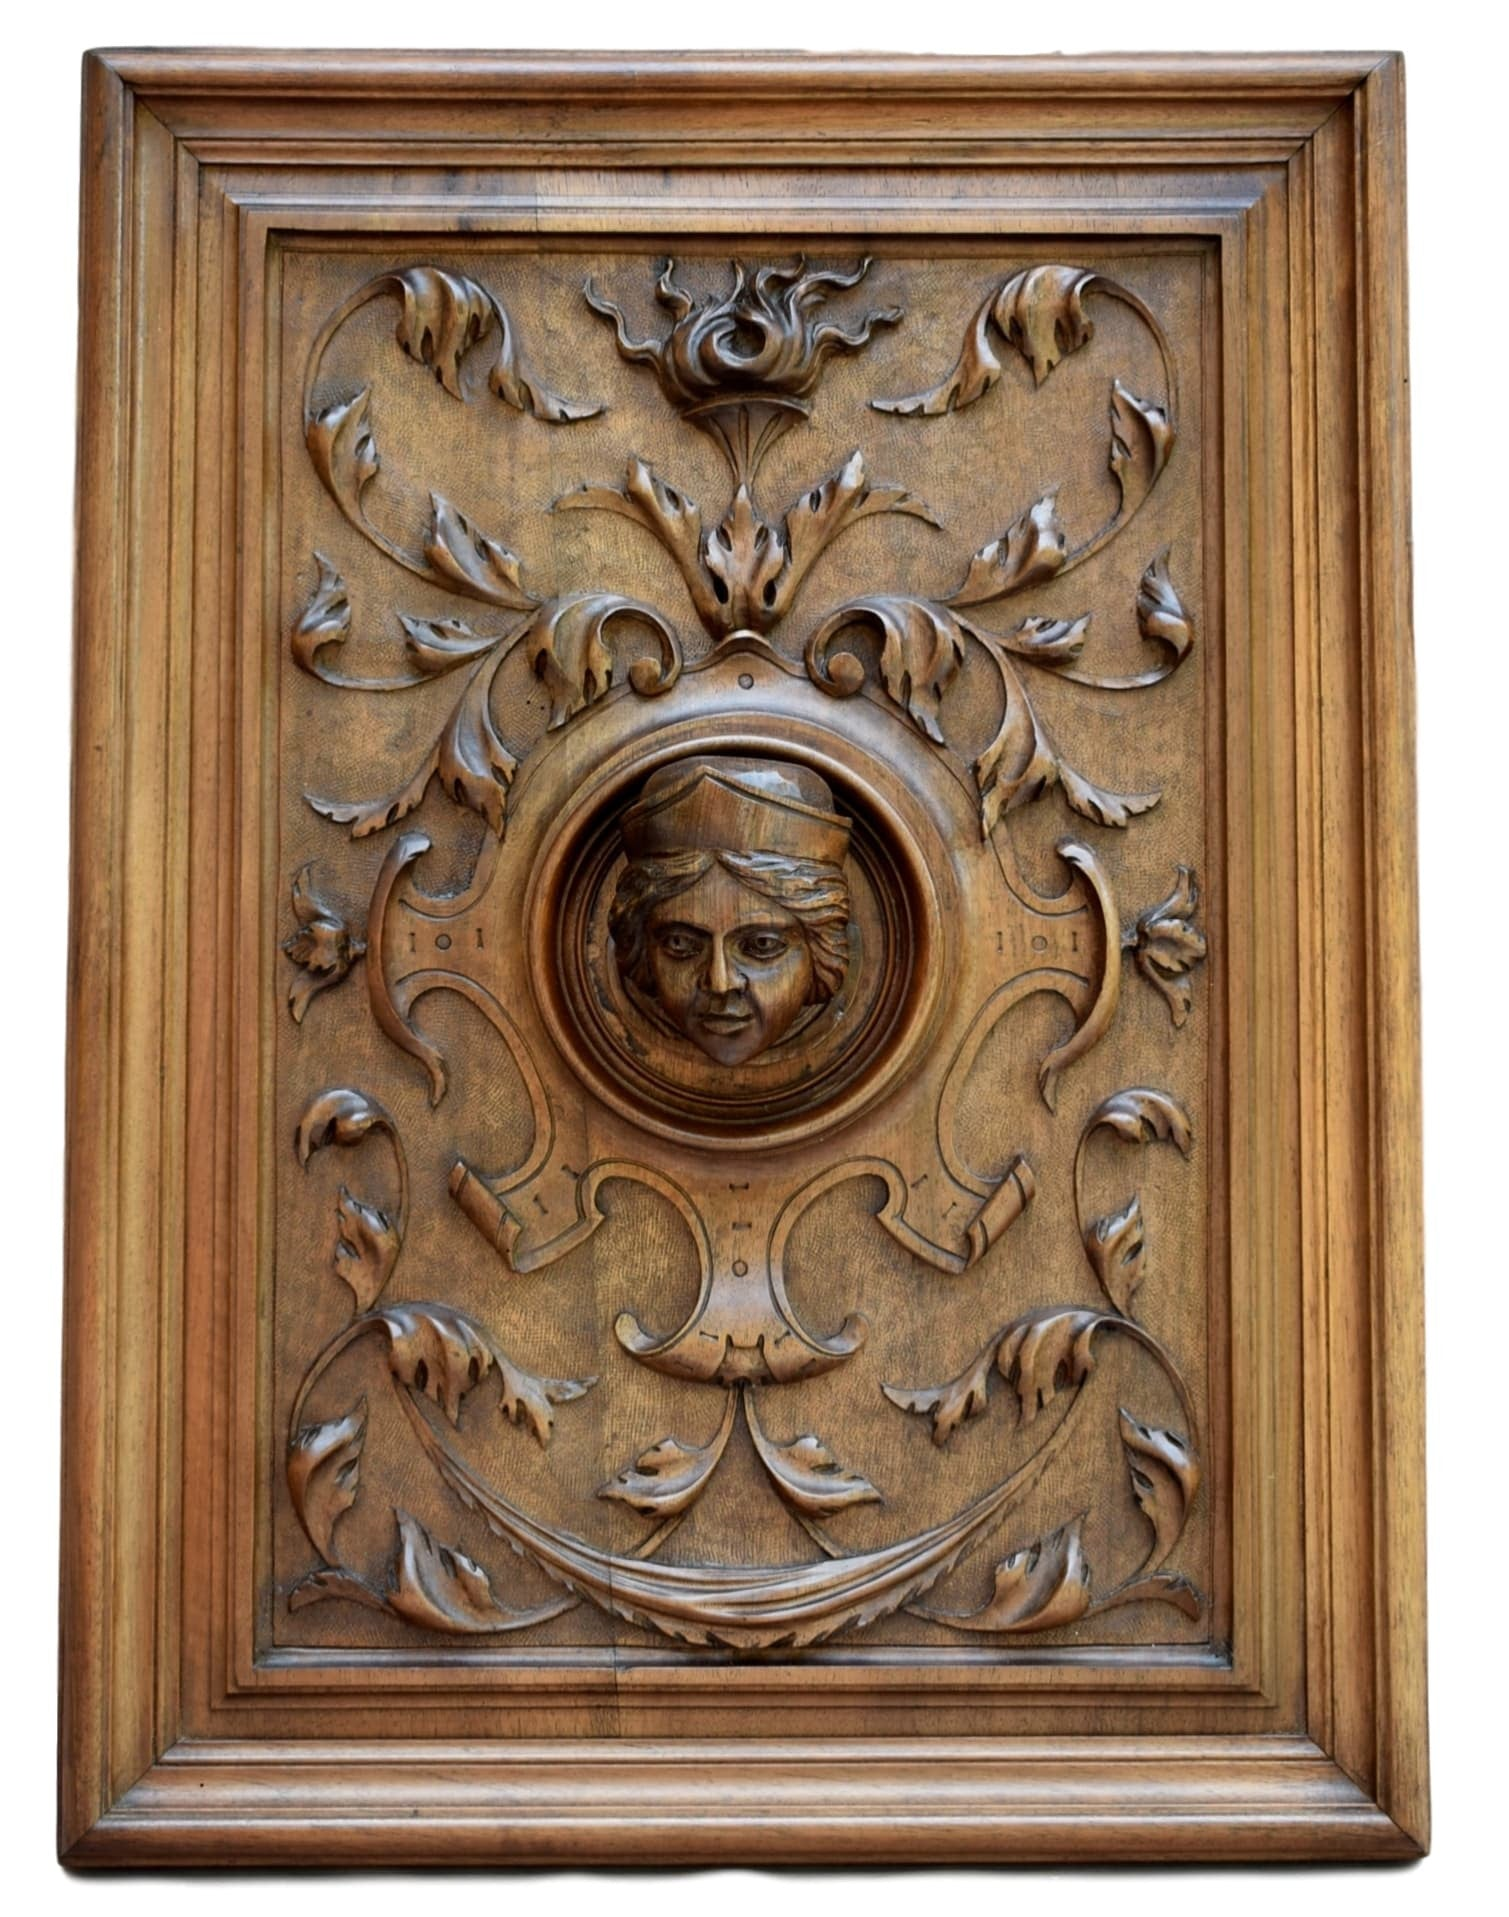 Carved Wooden Panel: the Queen - Charmantiques